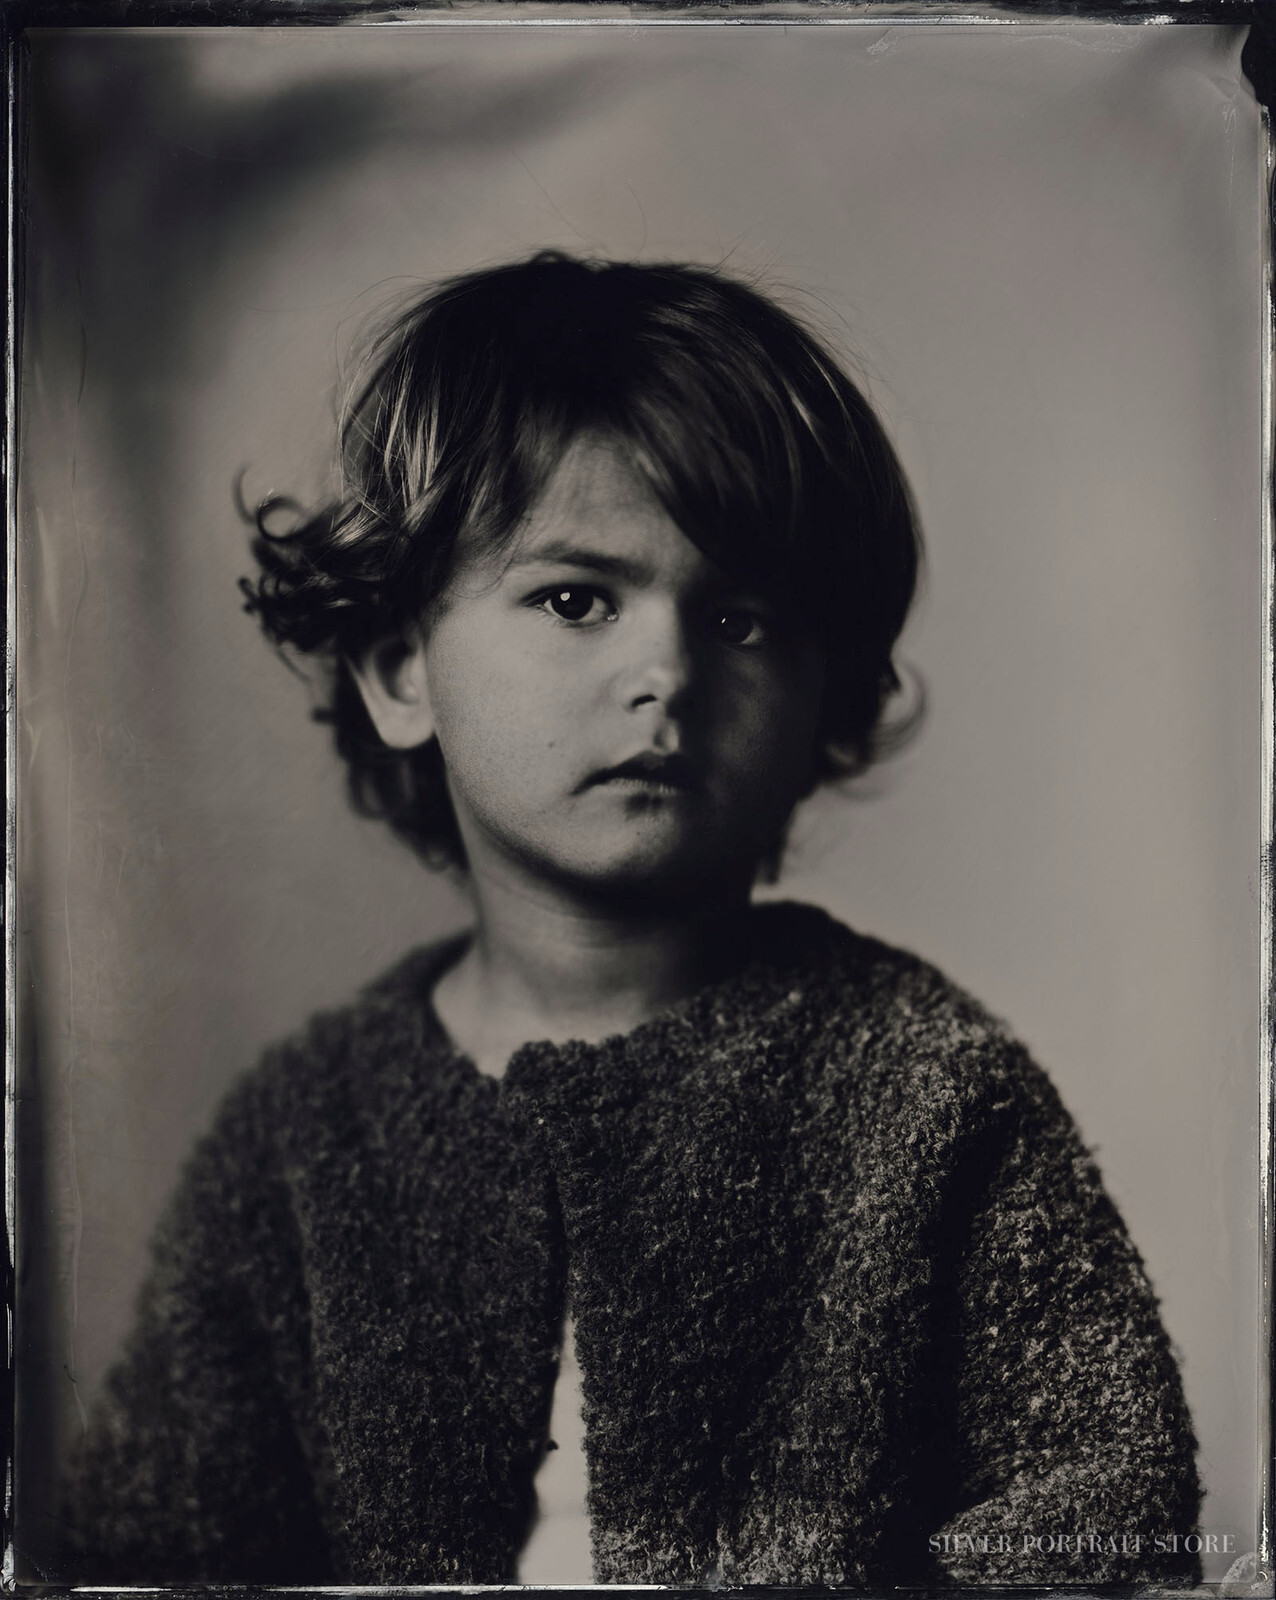 Tess-Silver Portrait Store-scan from Wet plate collodion-Tintype 20 x 25 cm.